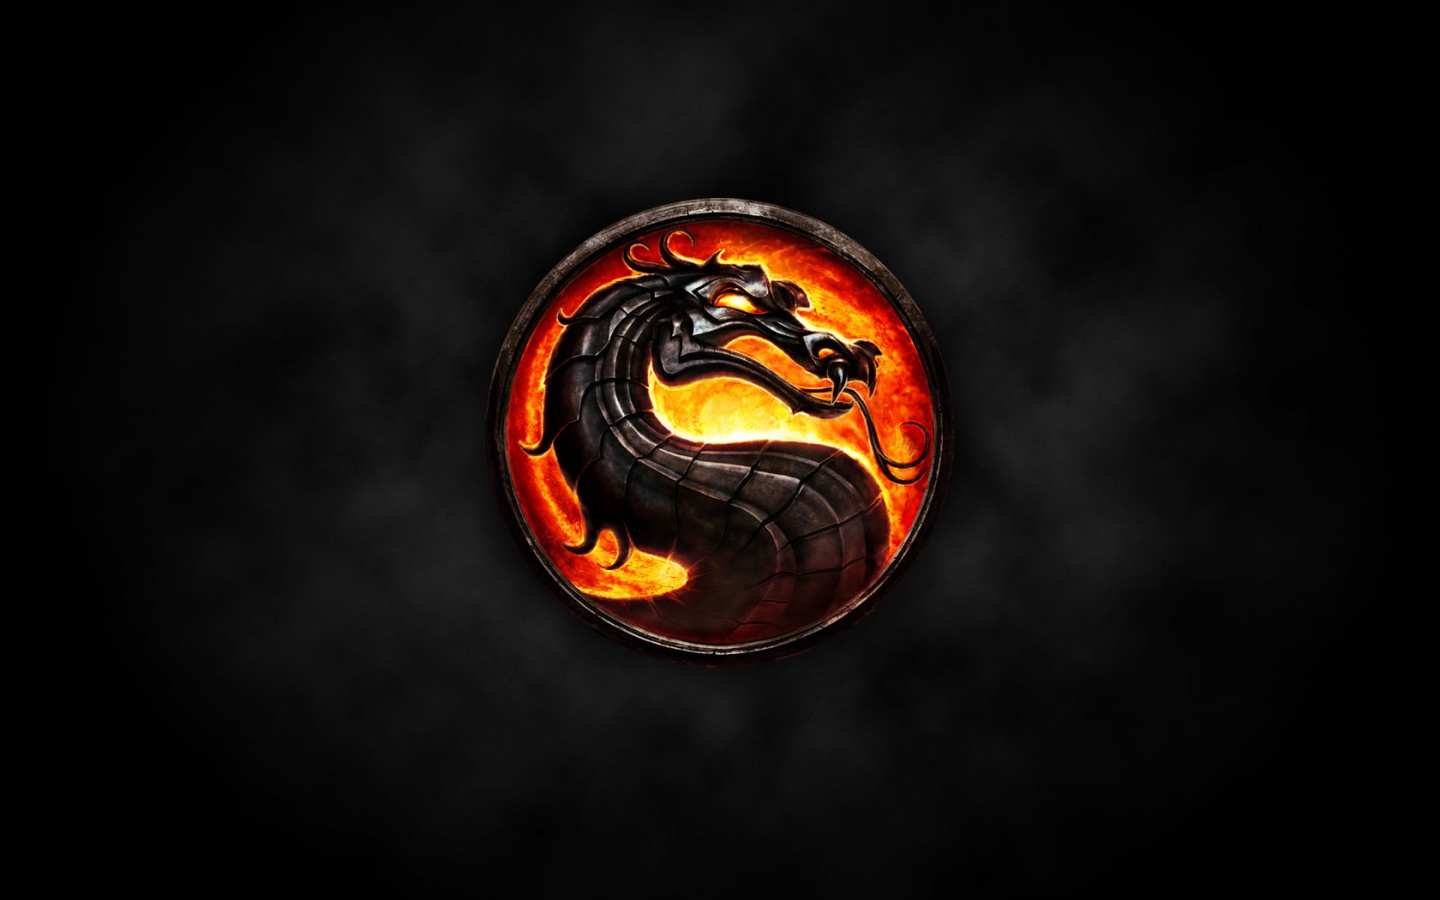 Mortal Kombat Wallpaper Symbol HD